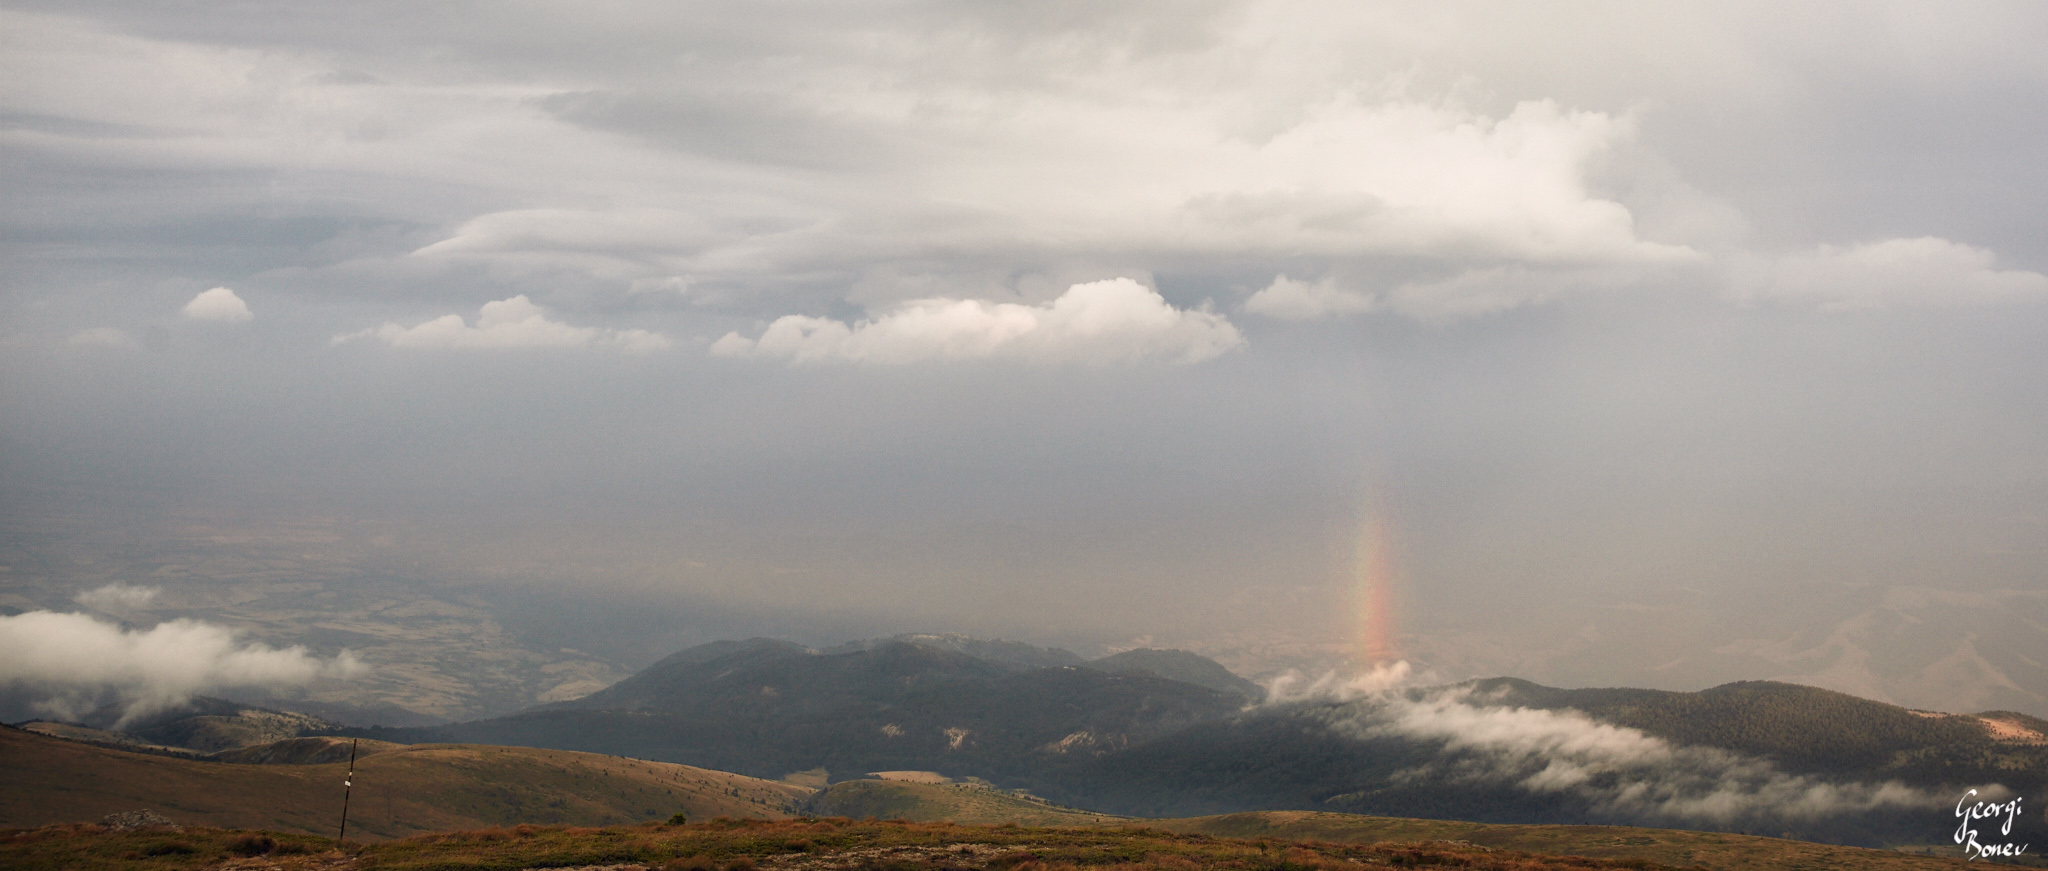 Rainbow above Mt. Stara Planina, Bulgaria